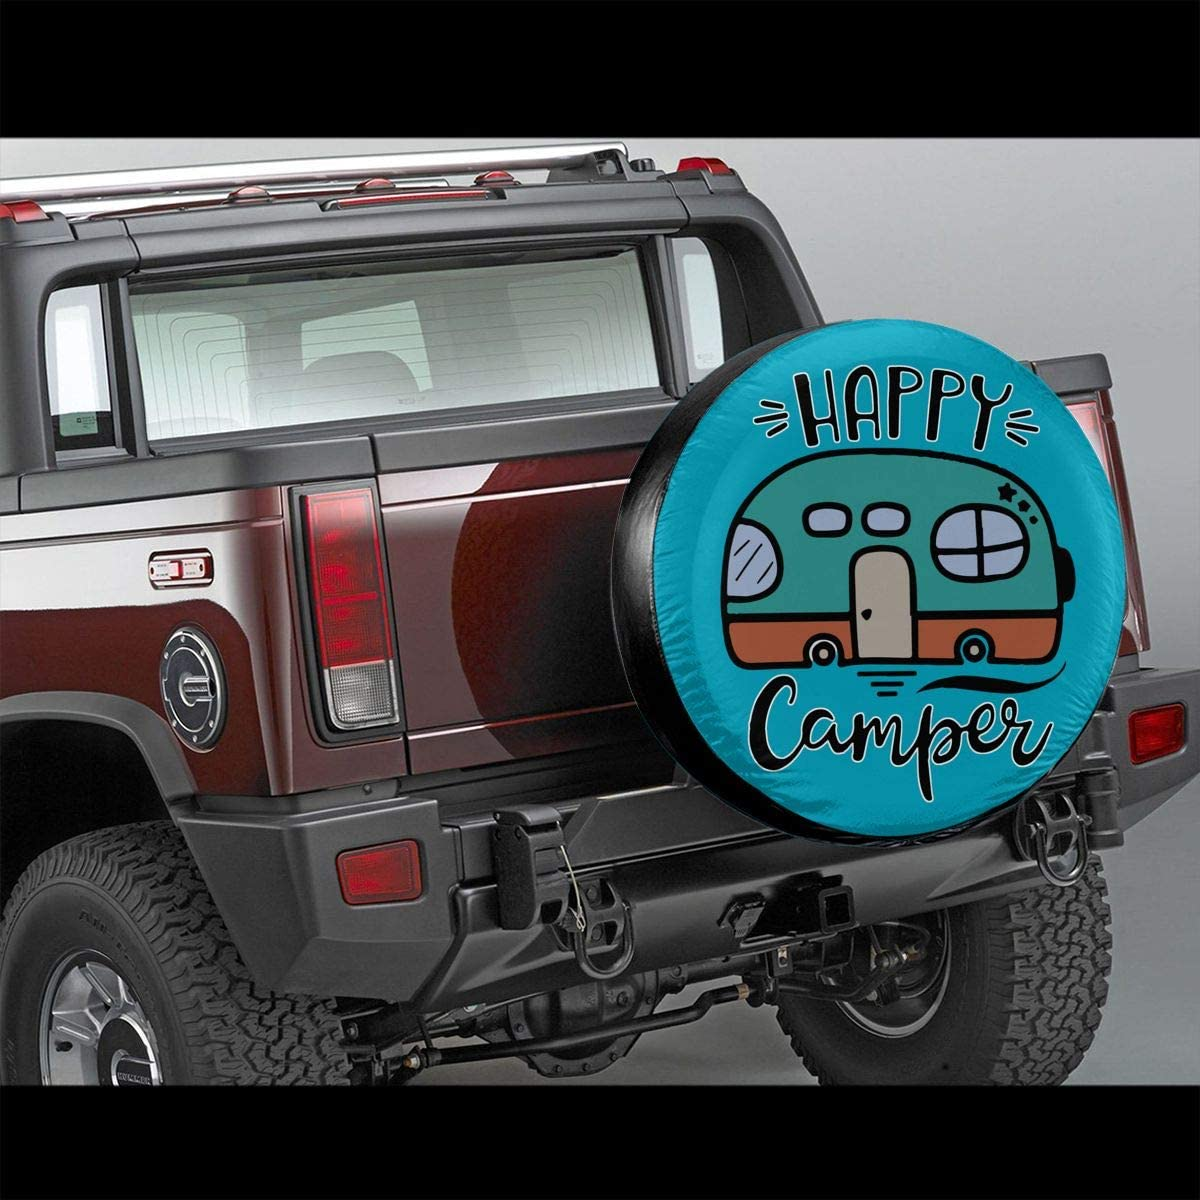 RV SUV and Many Vehicle 14 15 16 17 PINE-TREE-US Happy Camper Funny Spare Wheel Tire Cover Waterproof Dust-Proof Fit for Trailer